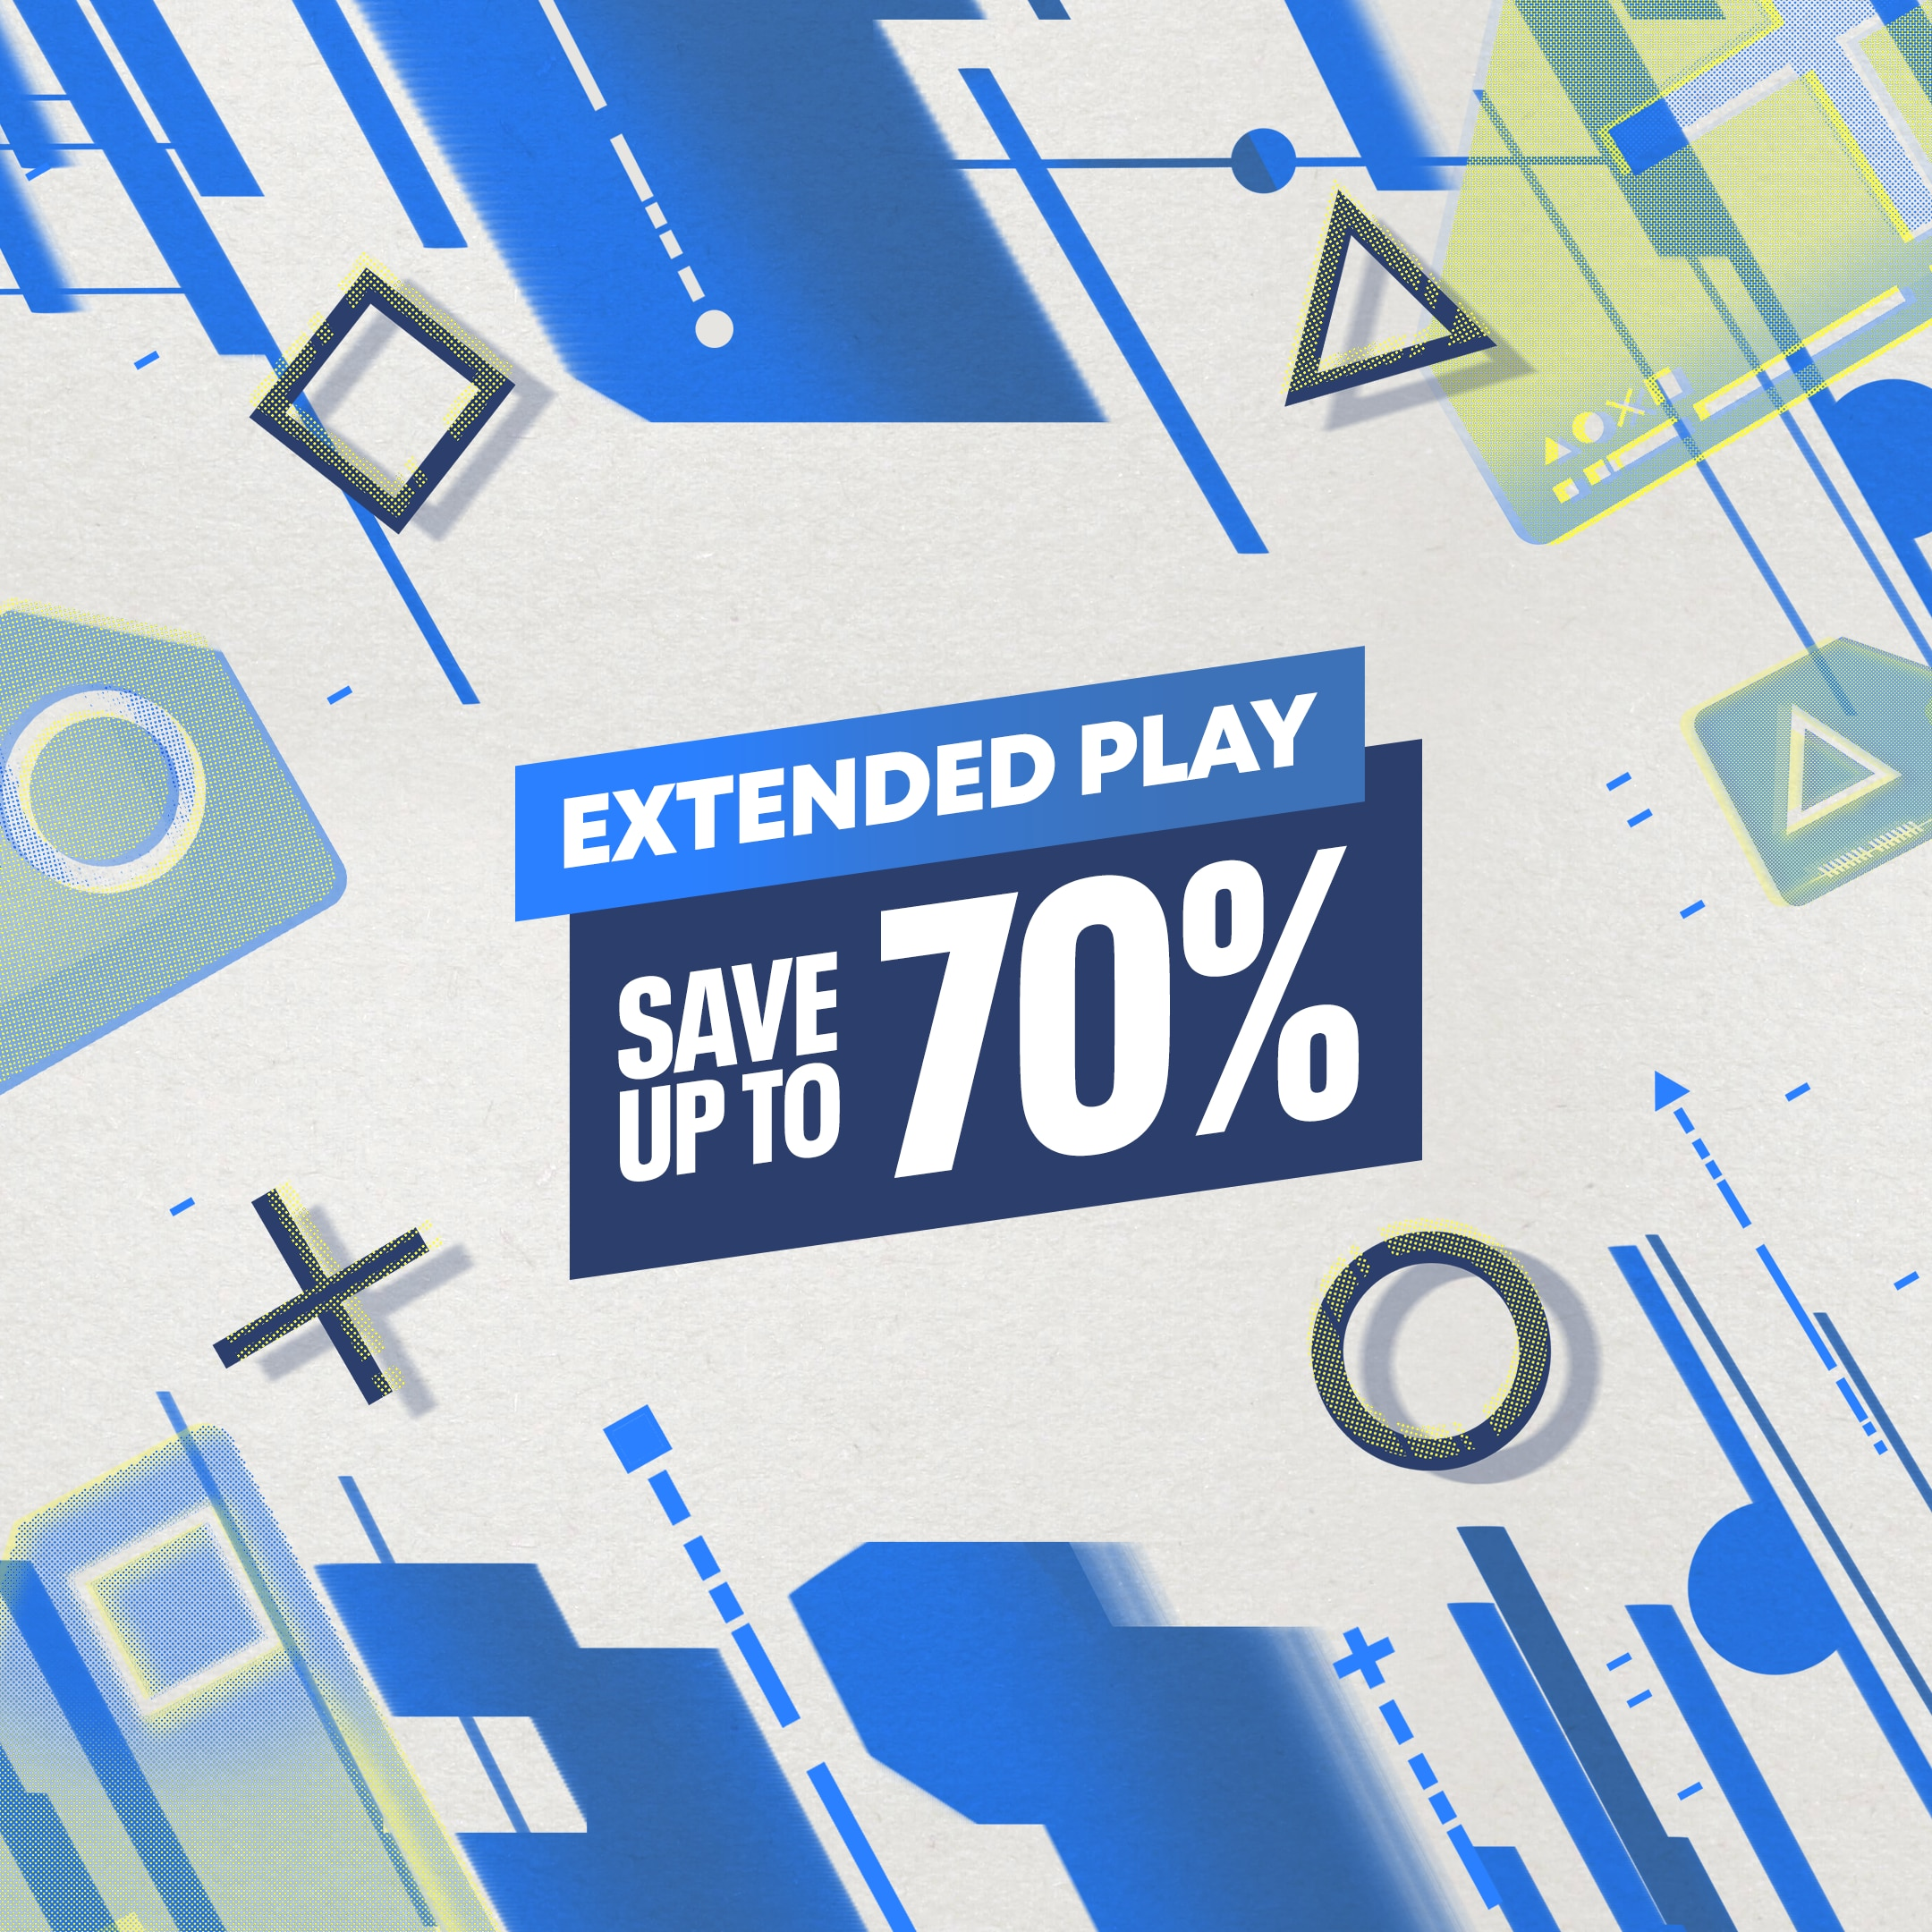 [PROMO] Extended Play